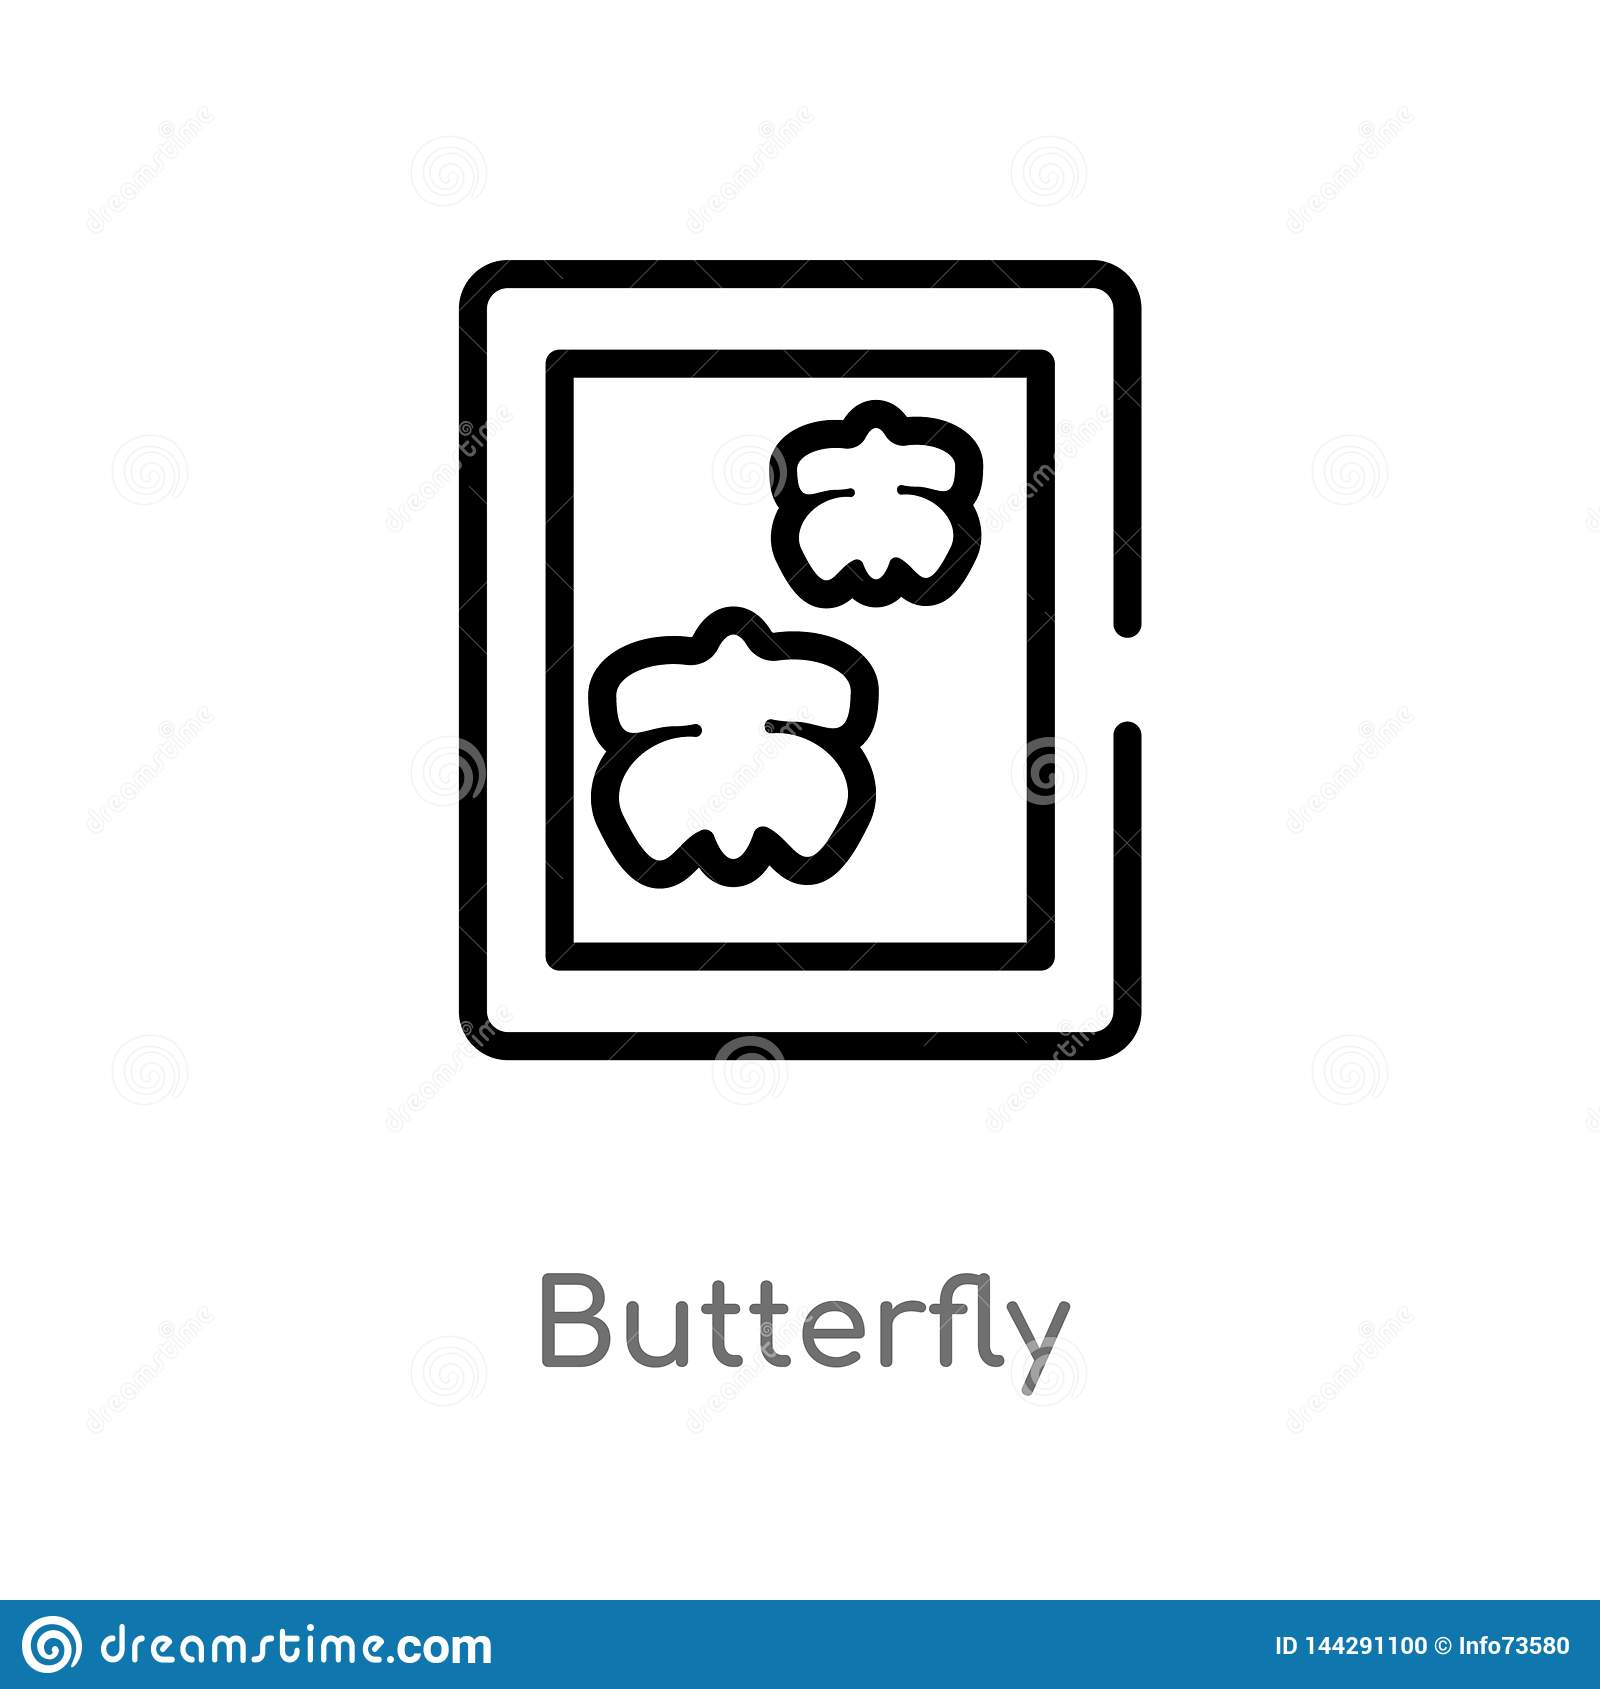 Outline Butterfly Vector Icon  Isolated Black Simple Line Element